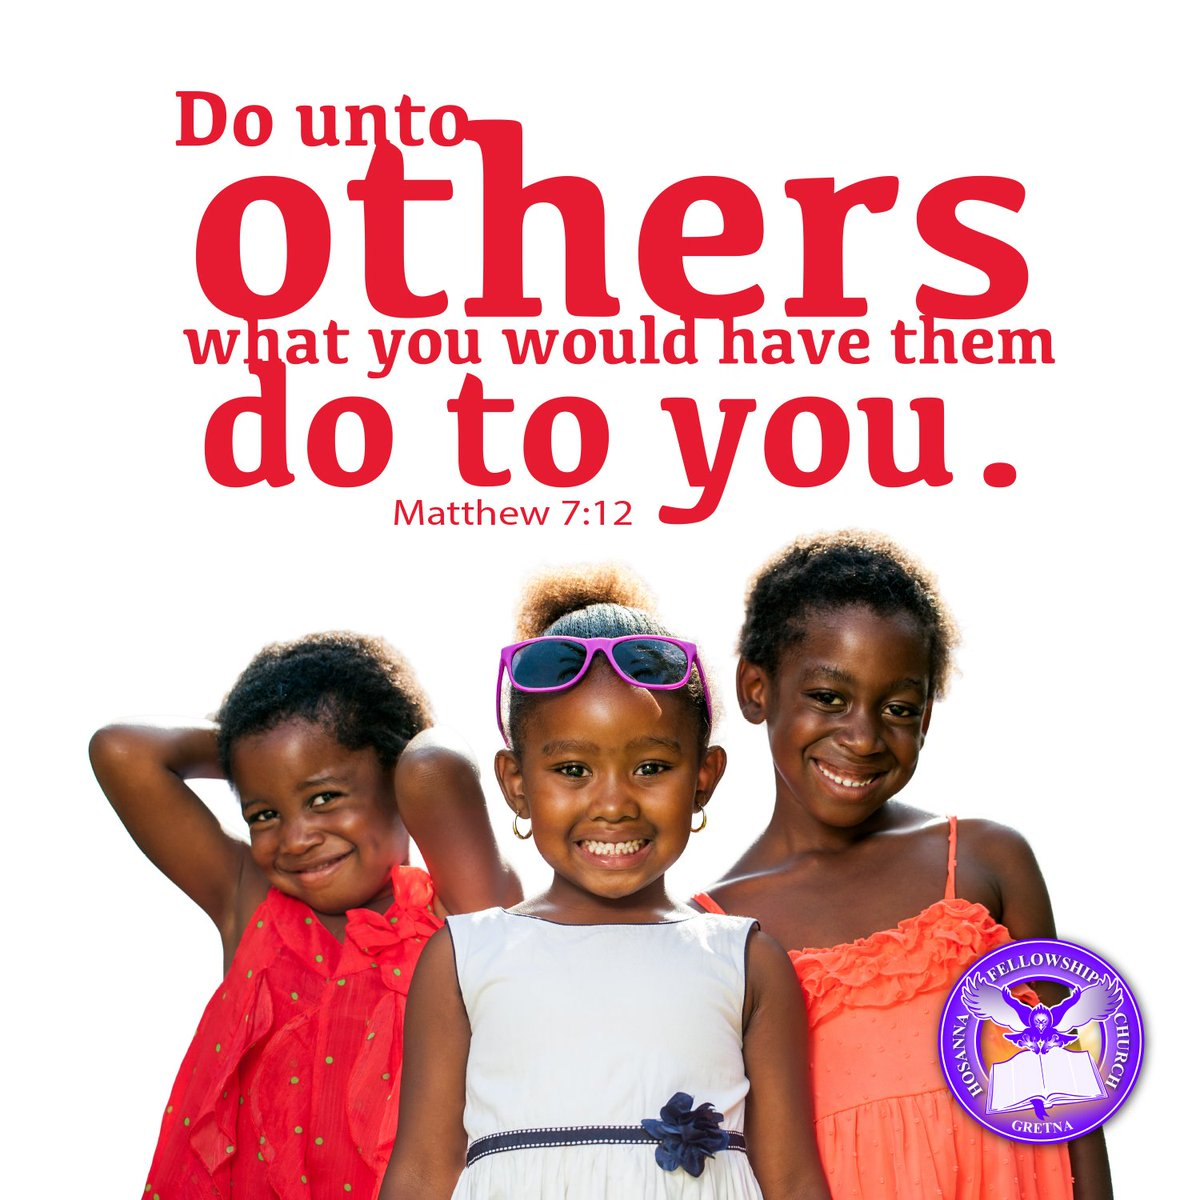 Treat others how you want to be treated. #LoveThyNeighbor #hfcgretna<br>http://pic.twitter.com/Z3TxzhmNm1